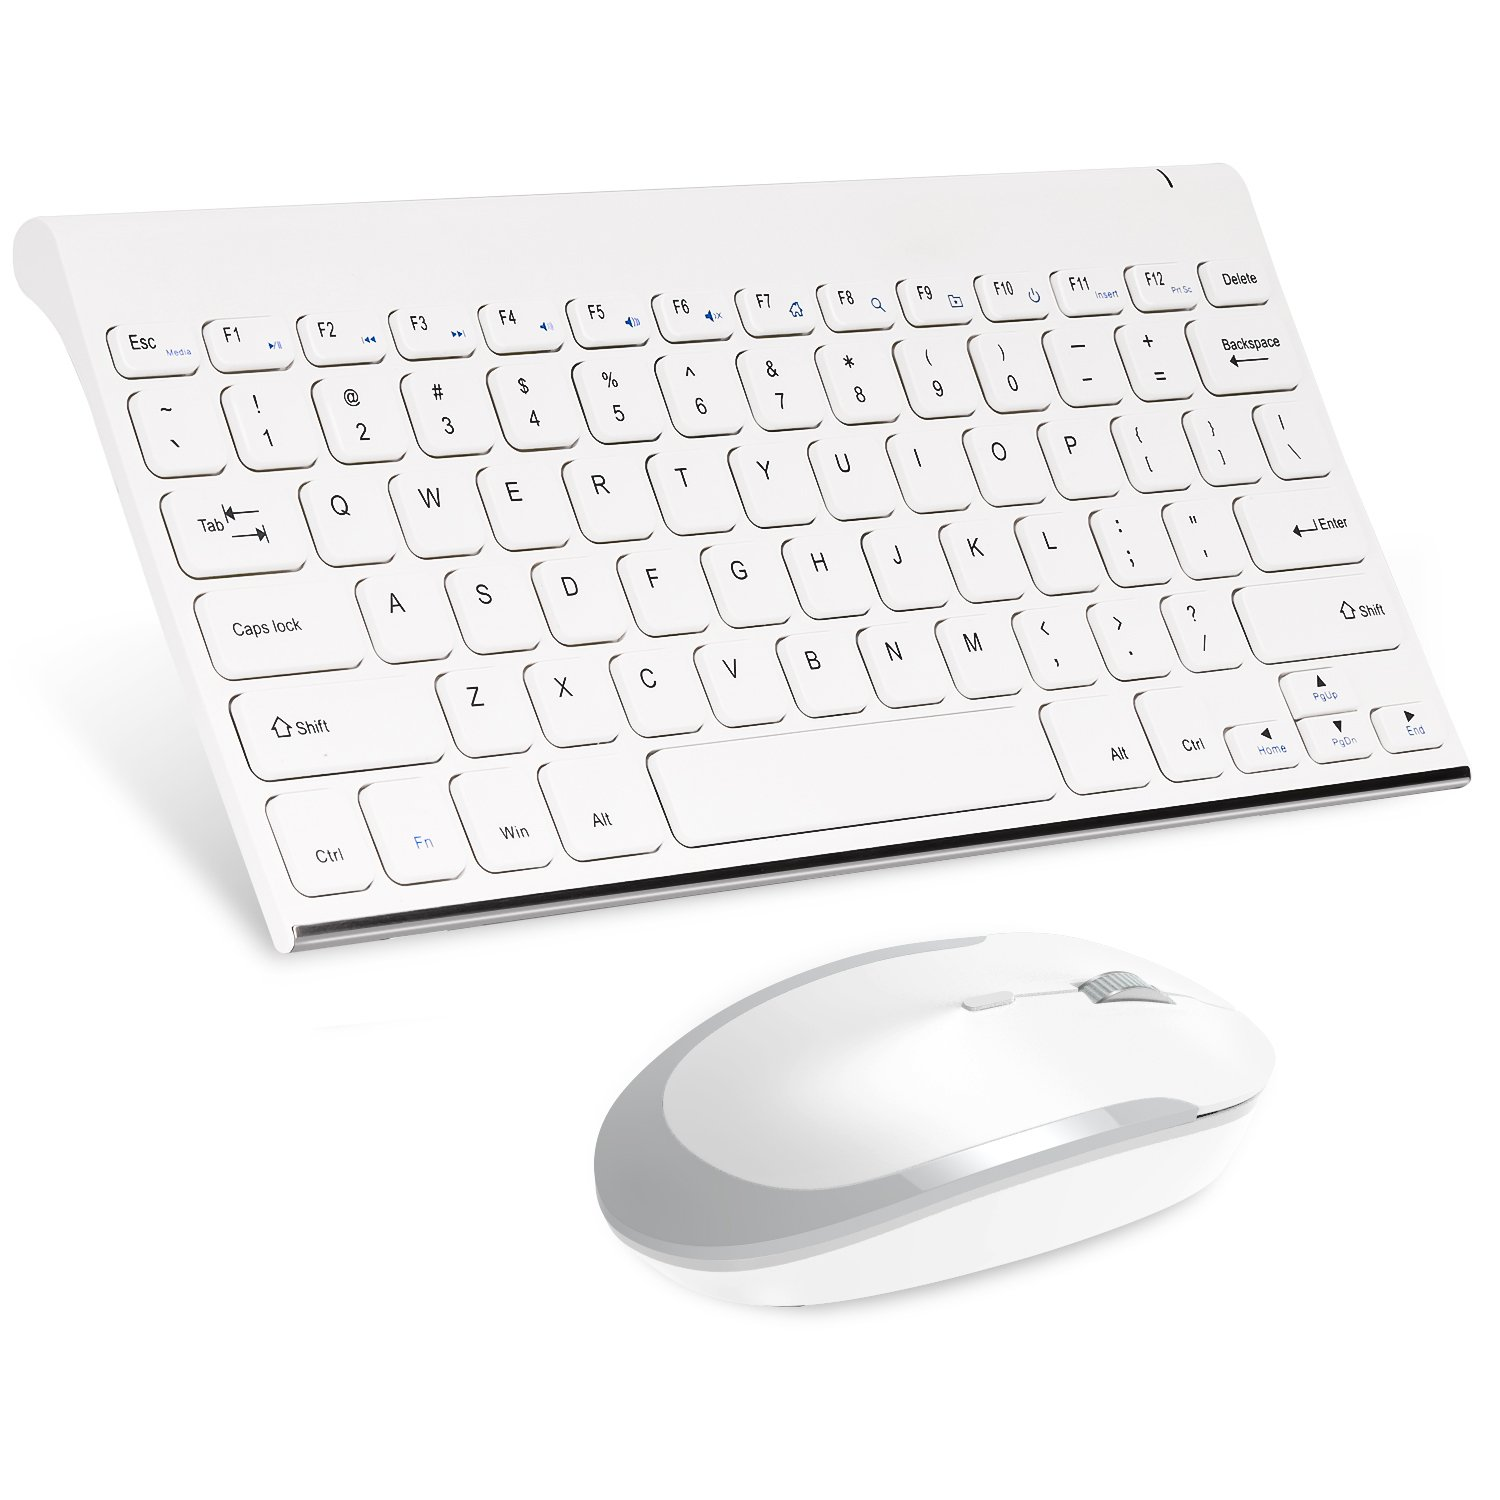 2.4G Ultra-Slim Mini Wireless Keyboard and Mouse Combo for PC Desktop WT UK